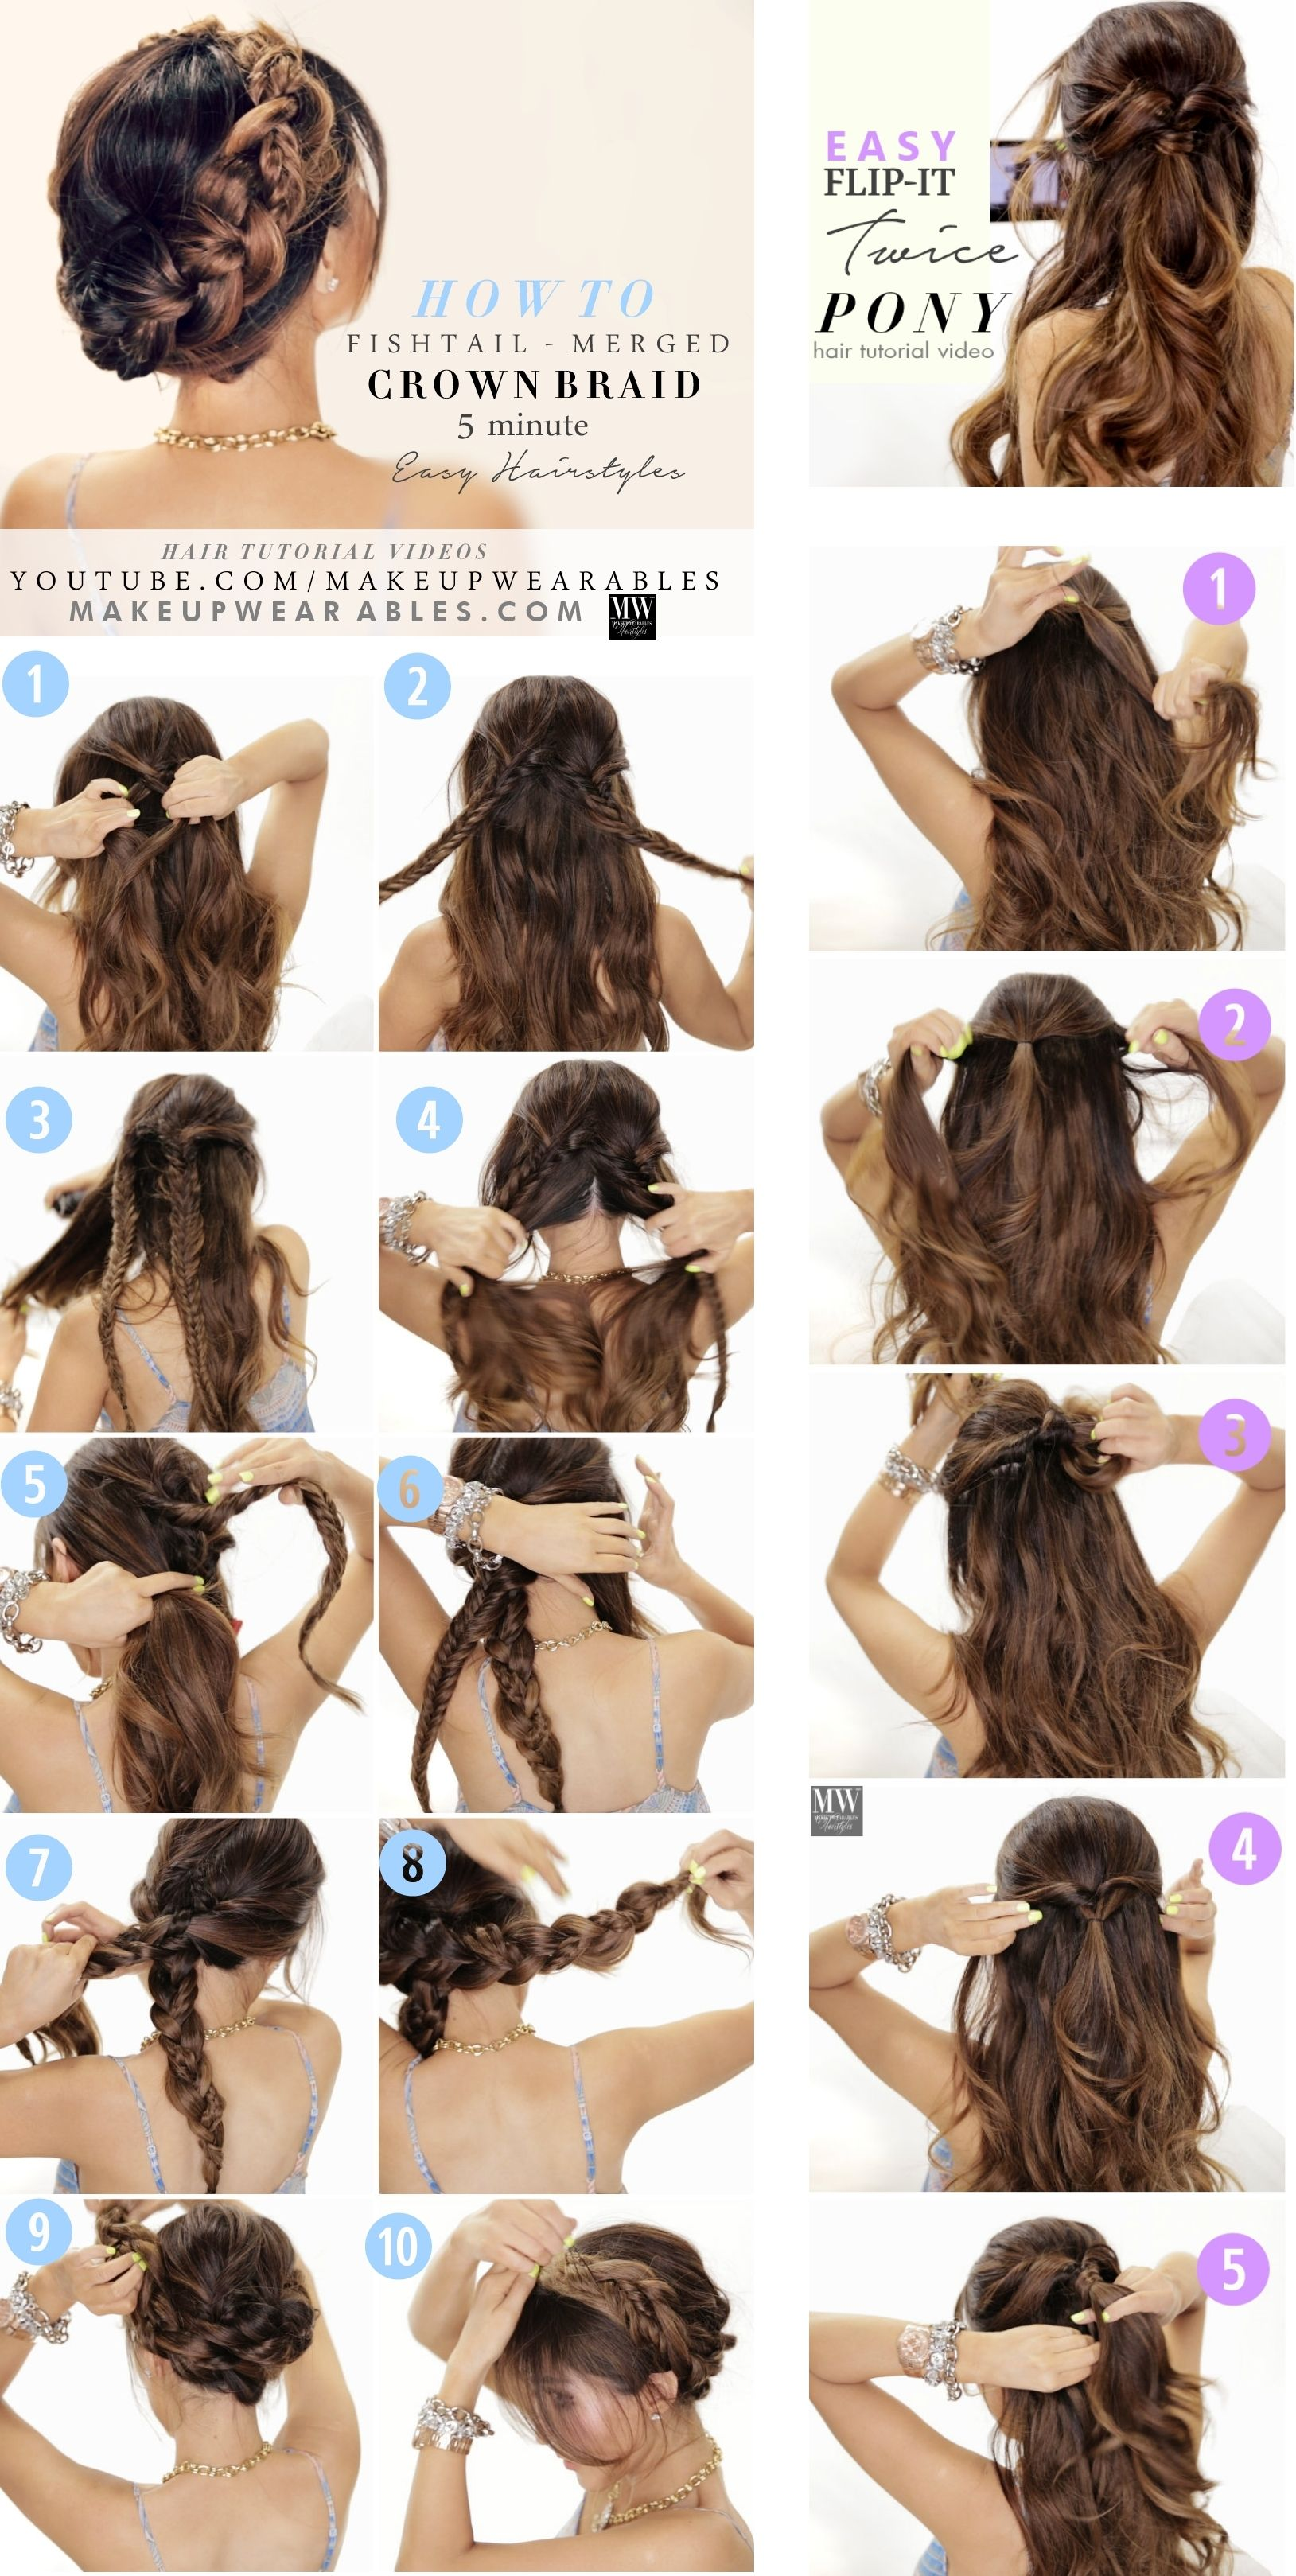 easy hairstyles steps - braided updo half-up half-down hair style ...